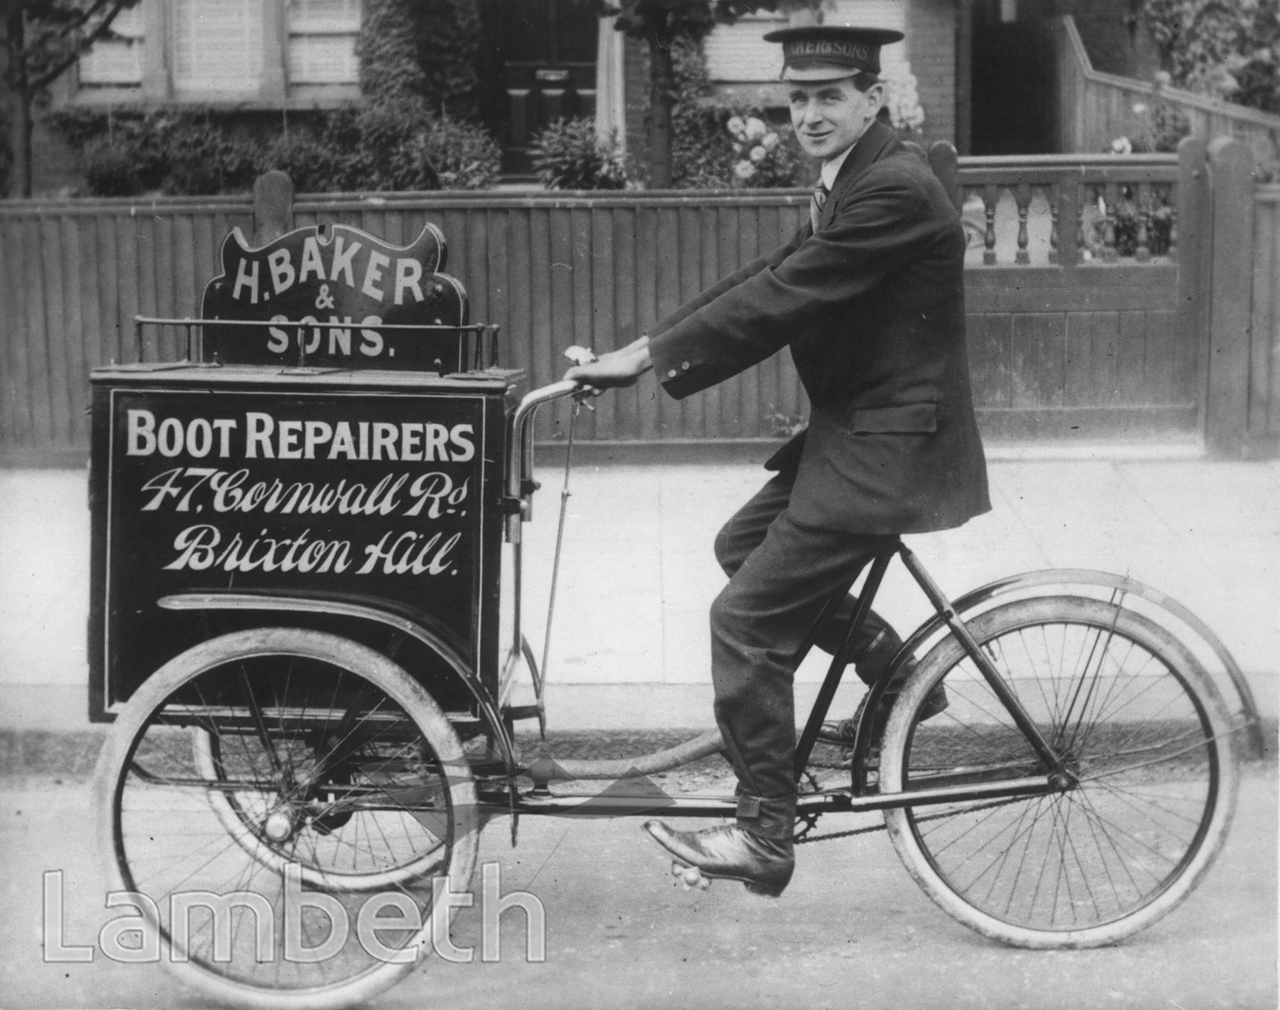 BOOT REPAIRER, BAKER & SON, 47 CORNWALL ROAD, BRIXTON HILL